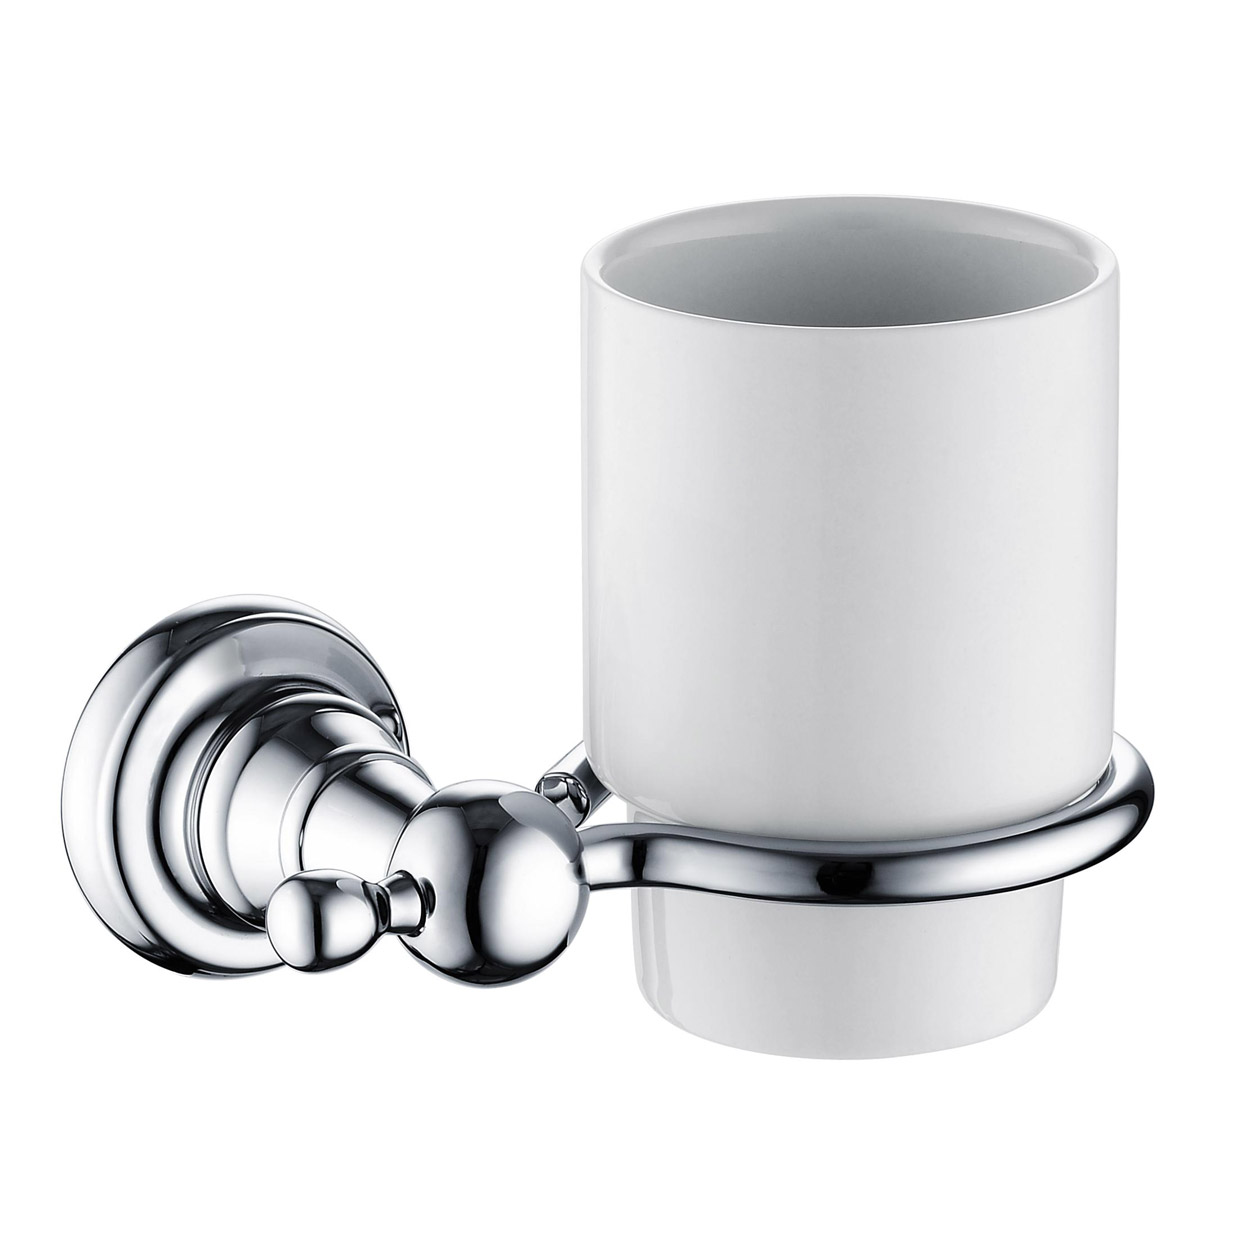 Bristan 1901 Tumbler & Brass Holder, Chrome Plated-0